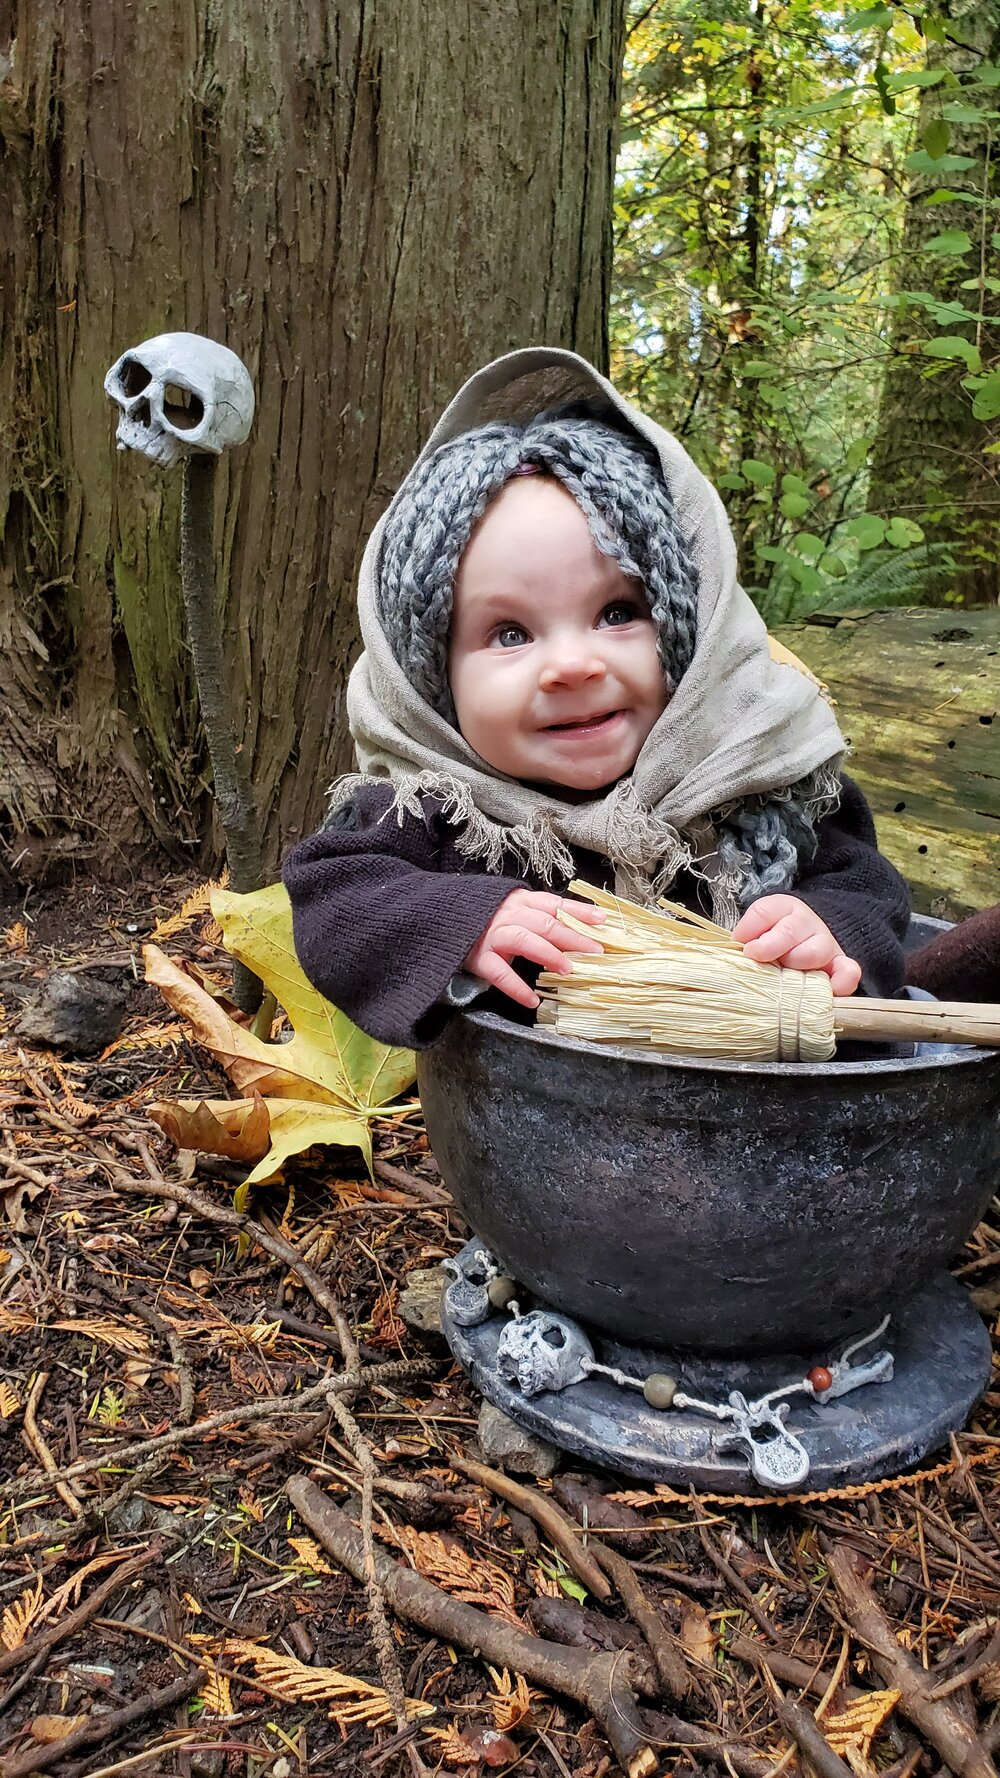 Baby Baba Yaga in mortar prop on ground in woods